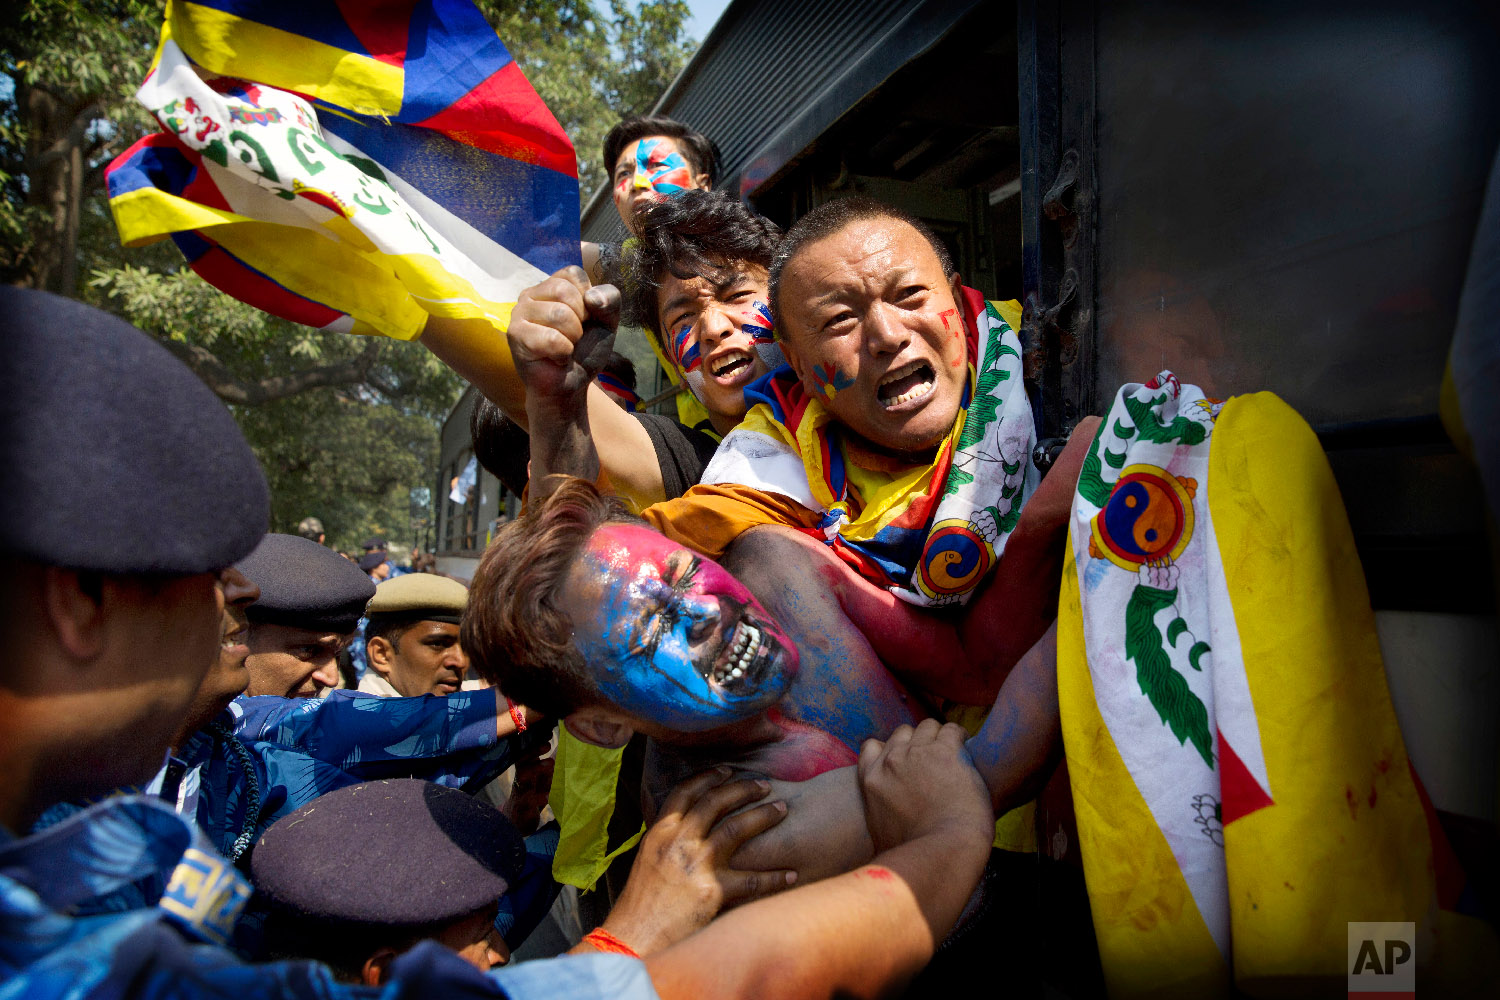 Indian para-military force soldiers push exiled Tibetan activists into a police bus during a protest outside the Chinese Embassy, in New Delhi, India, on March 9, 2018. (AP Photo/Manish Swarup)